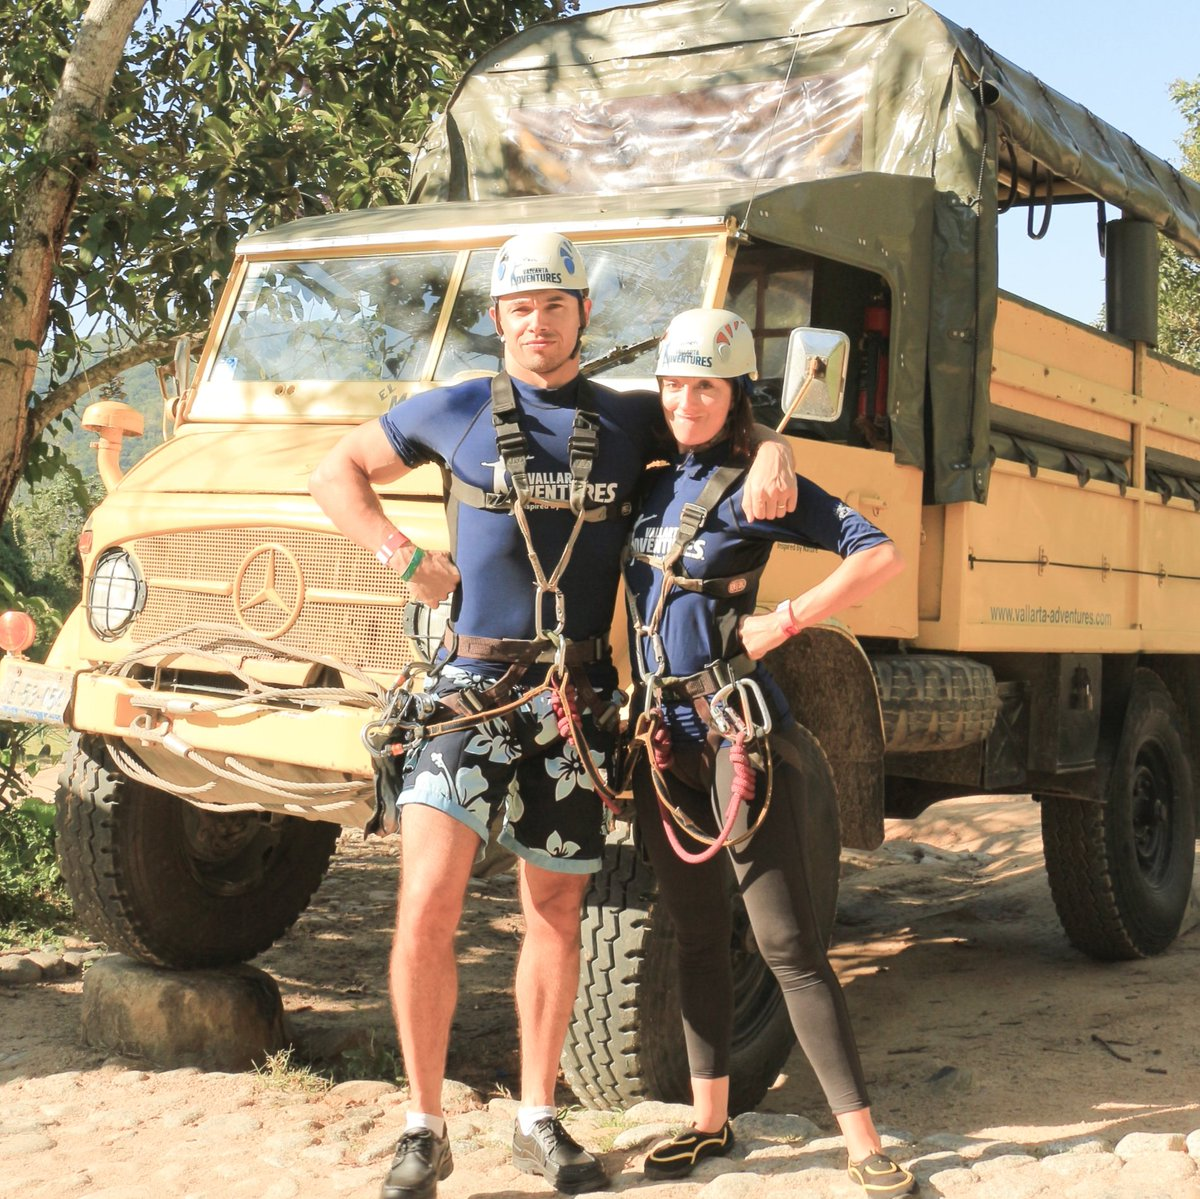 Last time @PaulTelfer and I wore hardhats it was just for some vacation fun. But on October 5th, we'll be building a home for a veteran family with @Homes4Familes.   We'd be honored to have your support, please visit our donation page: https://t.co/nCu6t3su8q https://t.co/sjMTeY3IBj